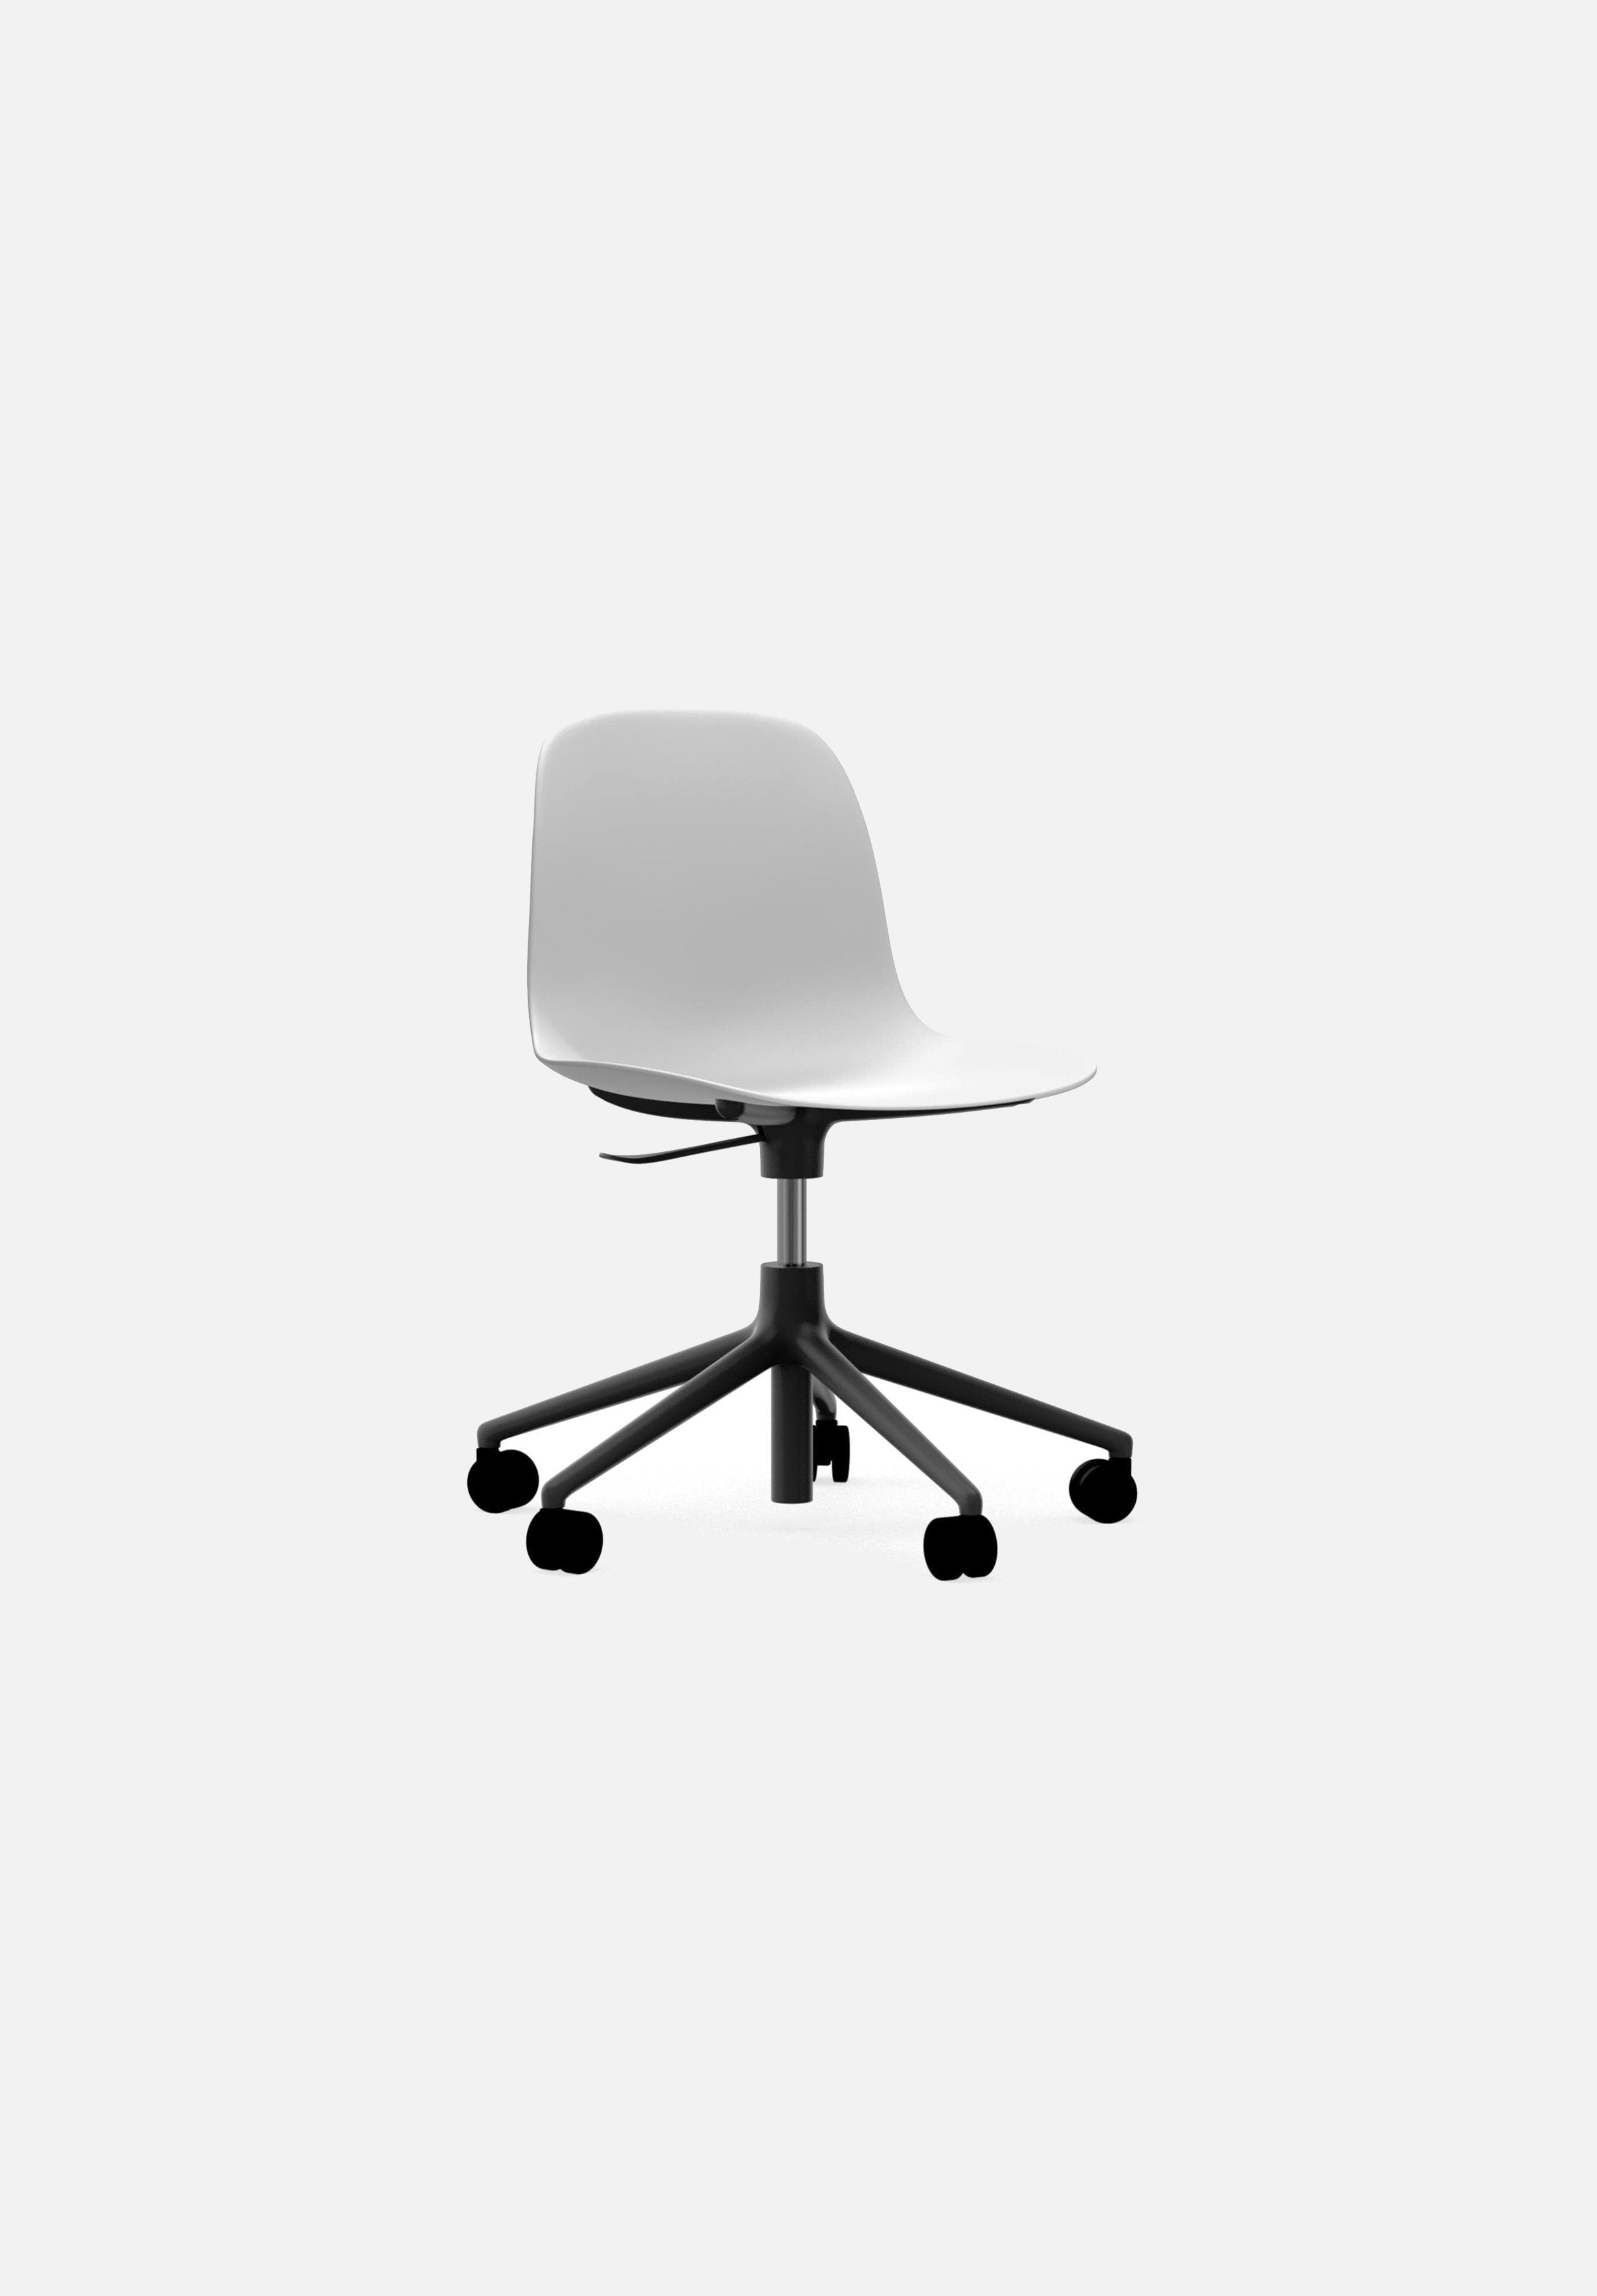 Form Chair — Swivel Gaslift-Simon Legald-Normann Copenhagen-White-Black Aluminum-Average